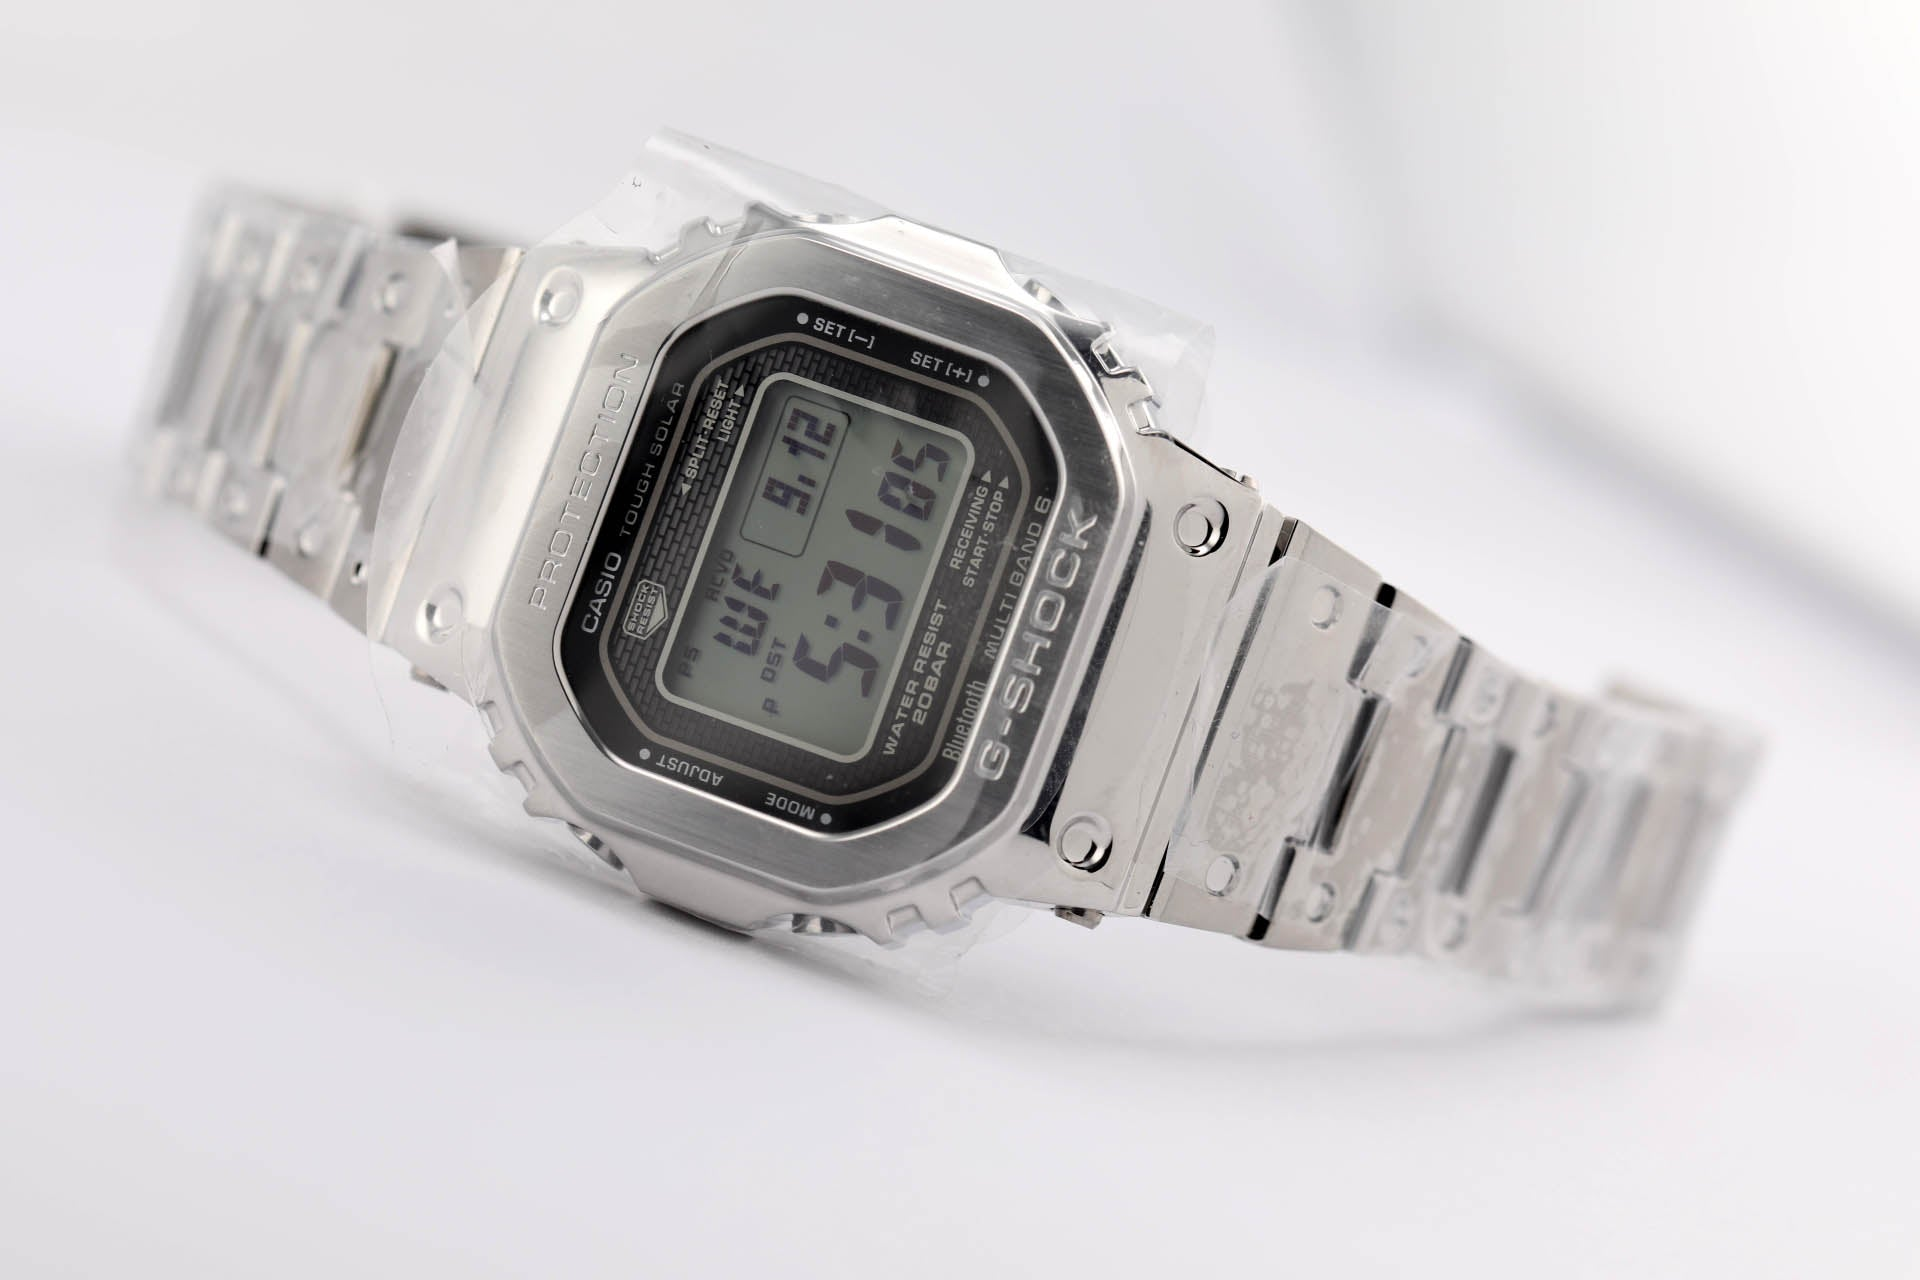 Casio G-Shock Full Metal GMW-B5000D 35th Anniversary Edition